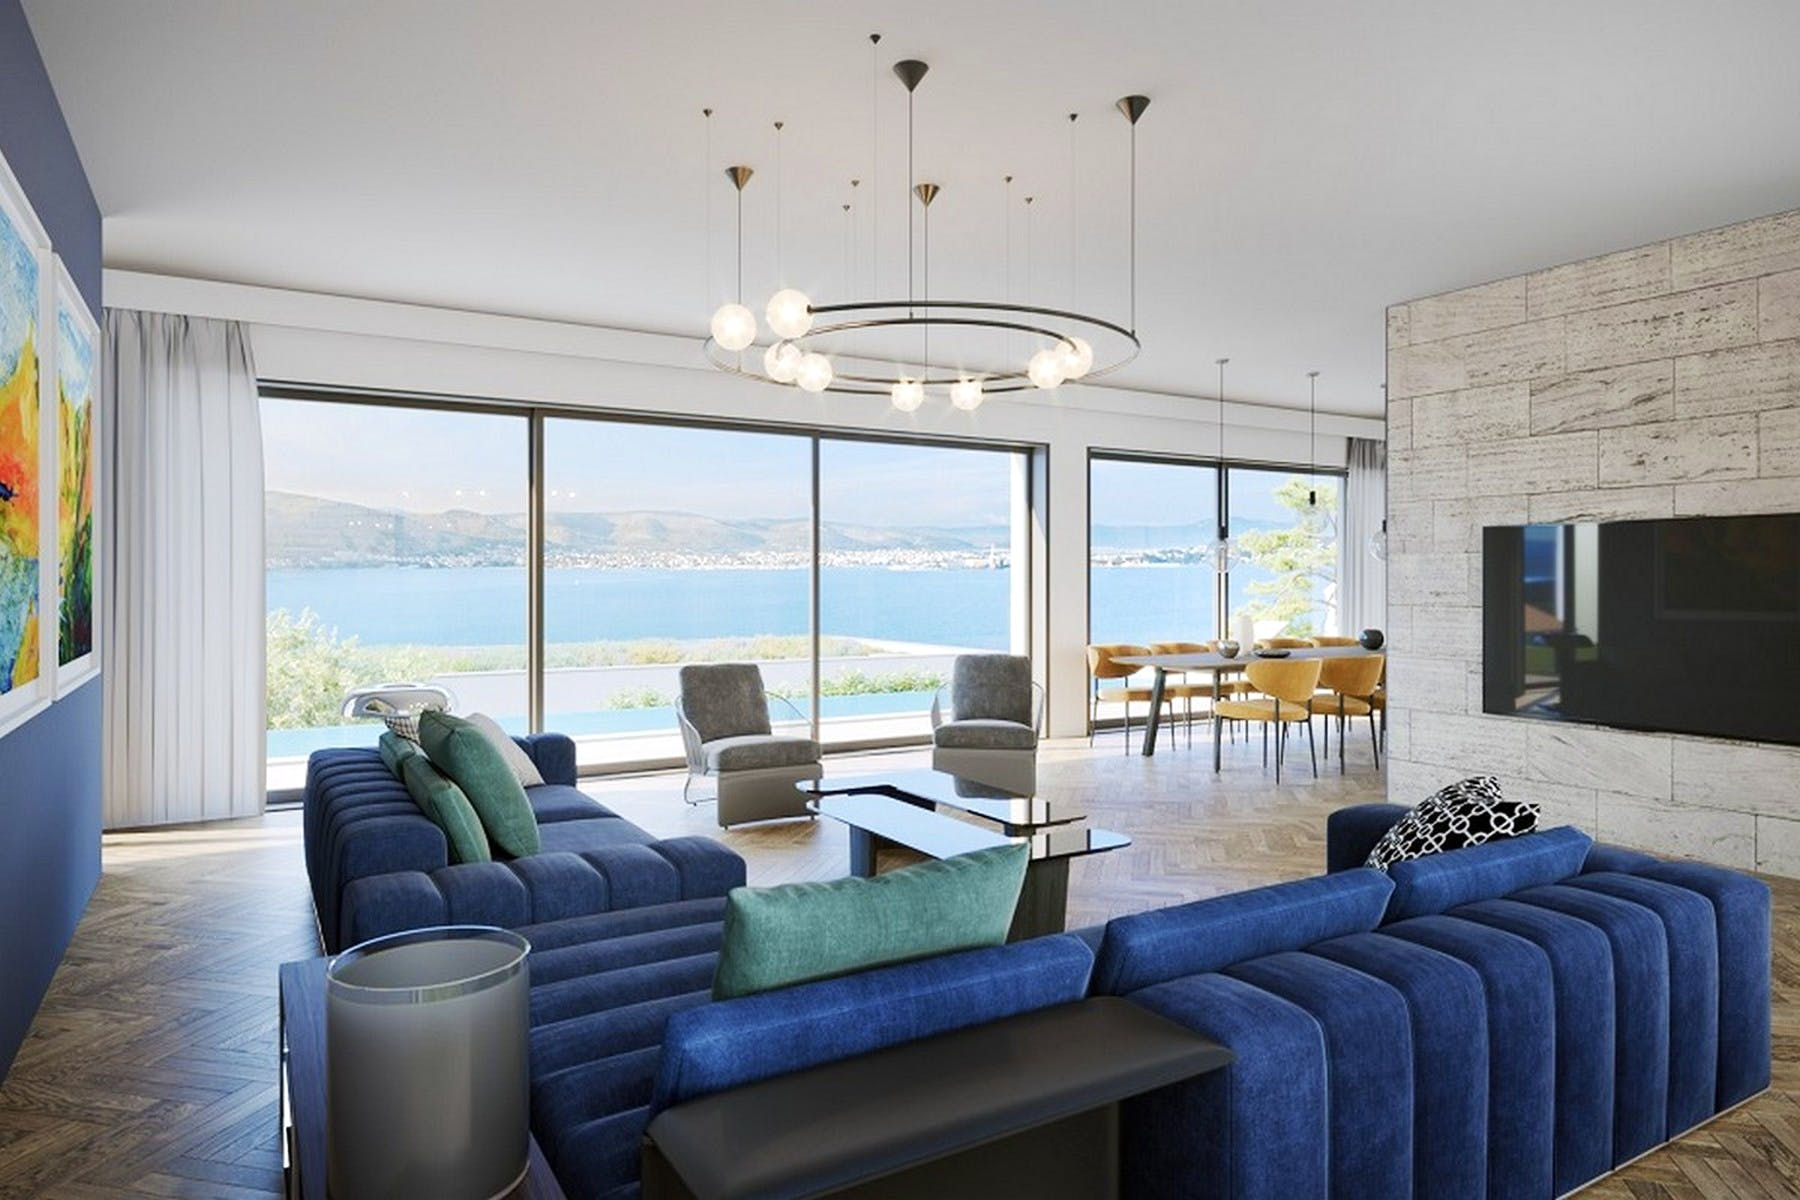 Comfortable living area with a sea view